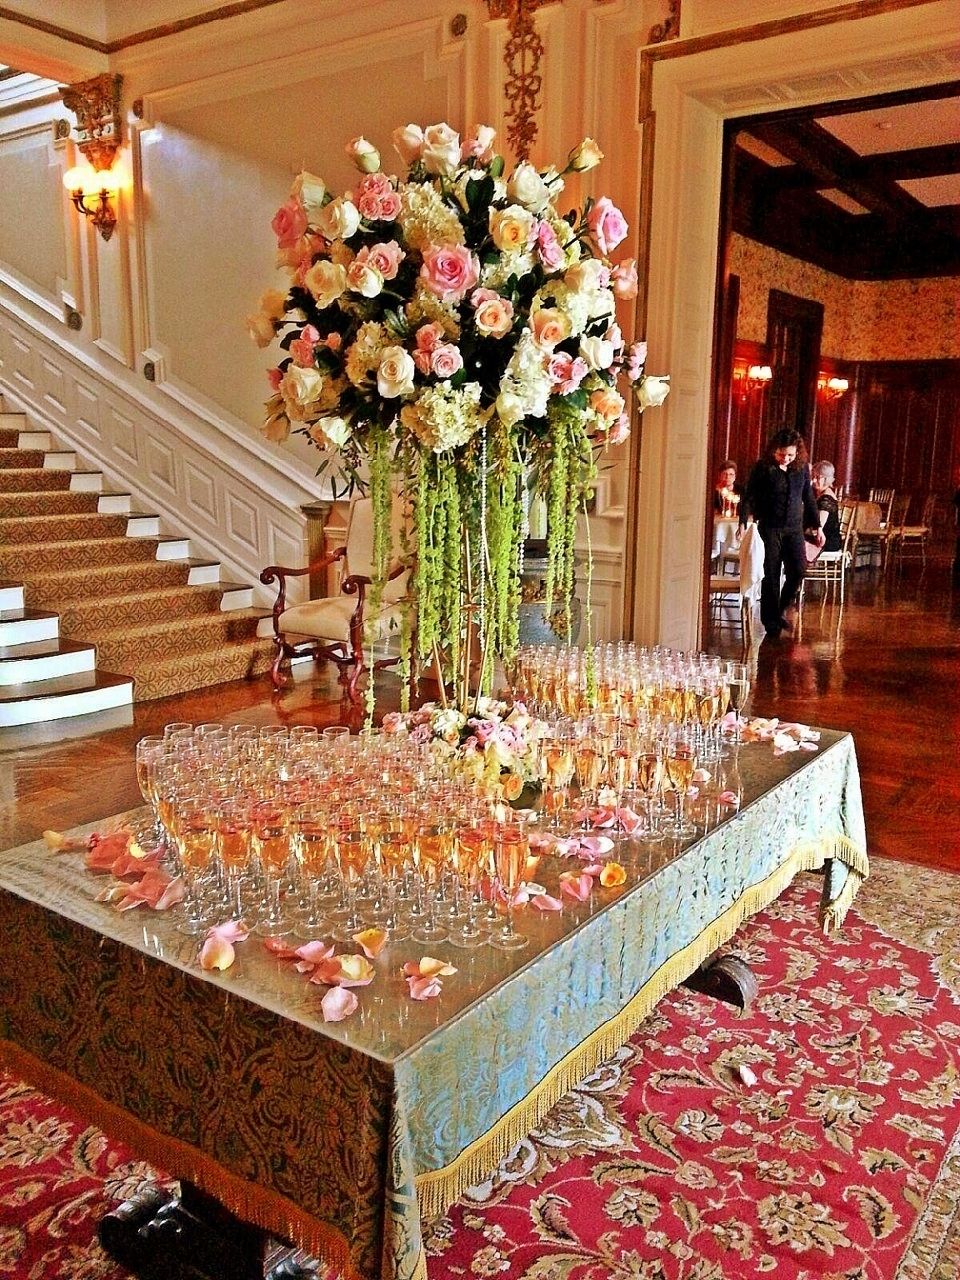 Destination - Italy -Wedding - Planner - Art Of Perfection - Event - Design - Luxury - Blush Flower - Gold Flower - Centerpiece